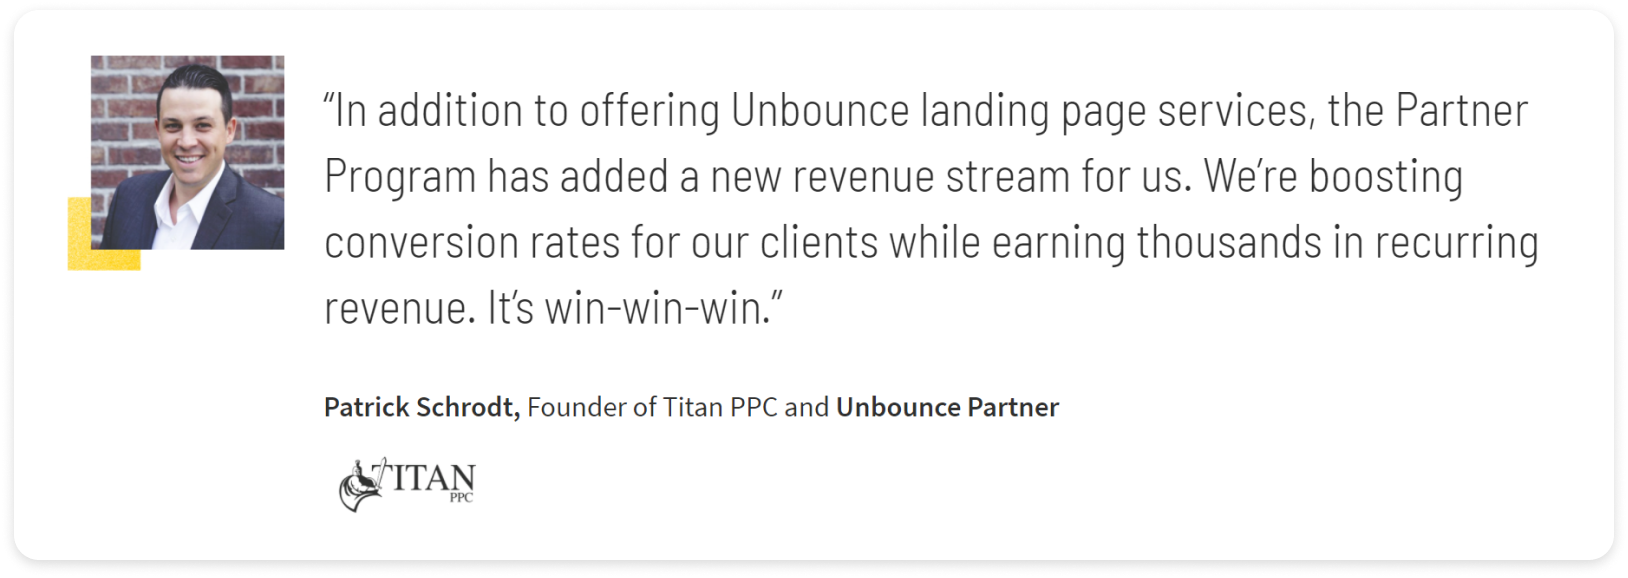 """Screenshot of quote about Unbounce partner program. Quote text: """"In addition to offer Unbounce landing page services, the Partner Program had added a new revenue stream for us. We're boosting conversion rates for our clients while earning thousands in recurring revenue. It's a win-win-win."""" - Patrick Schrodt, Founder of Titan PPC and Unbounce Partner"""